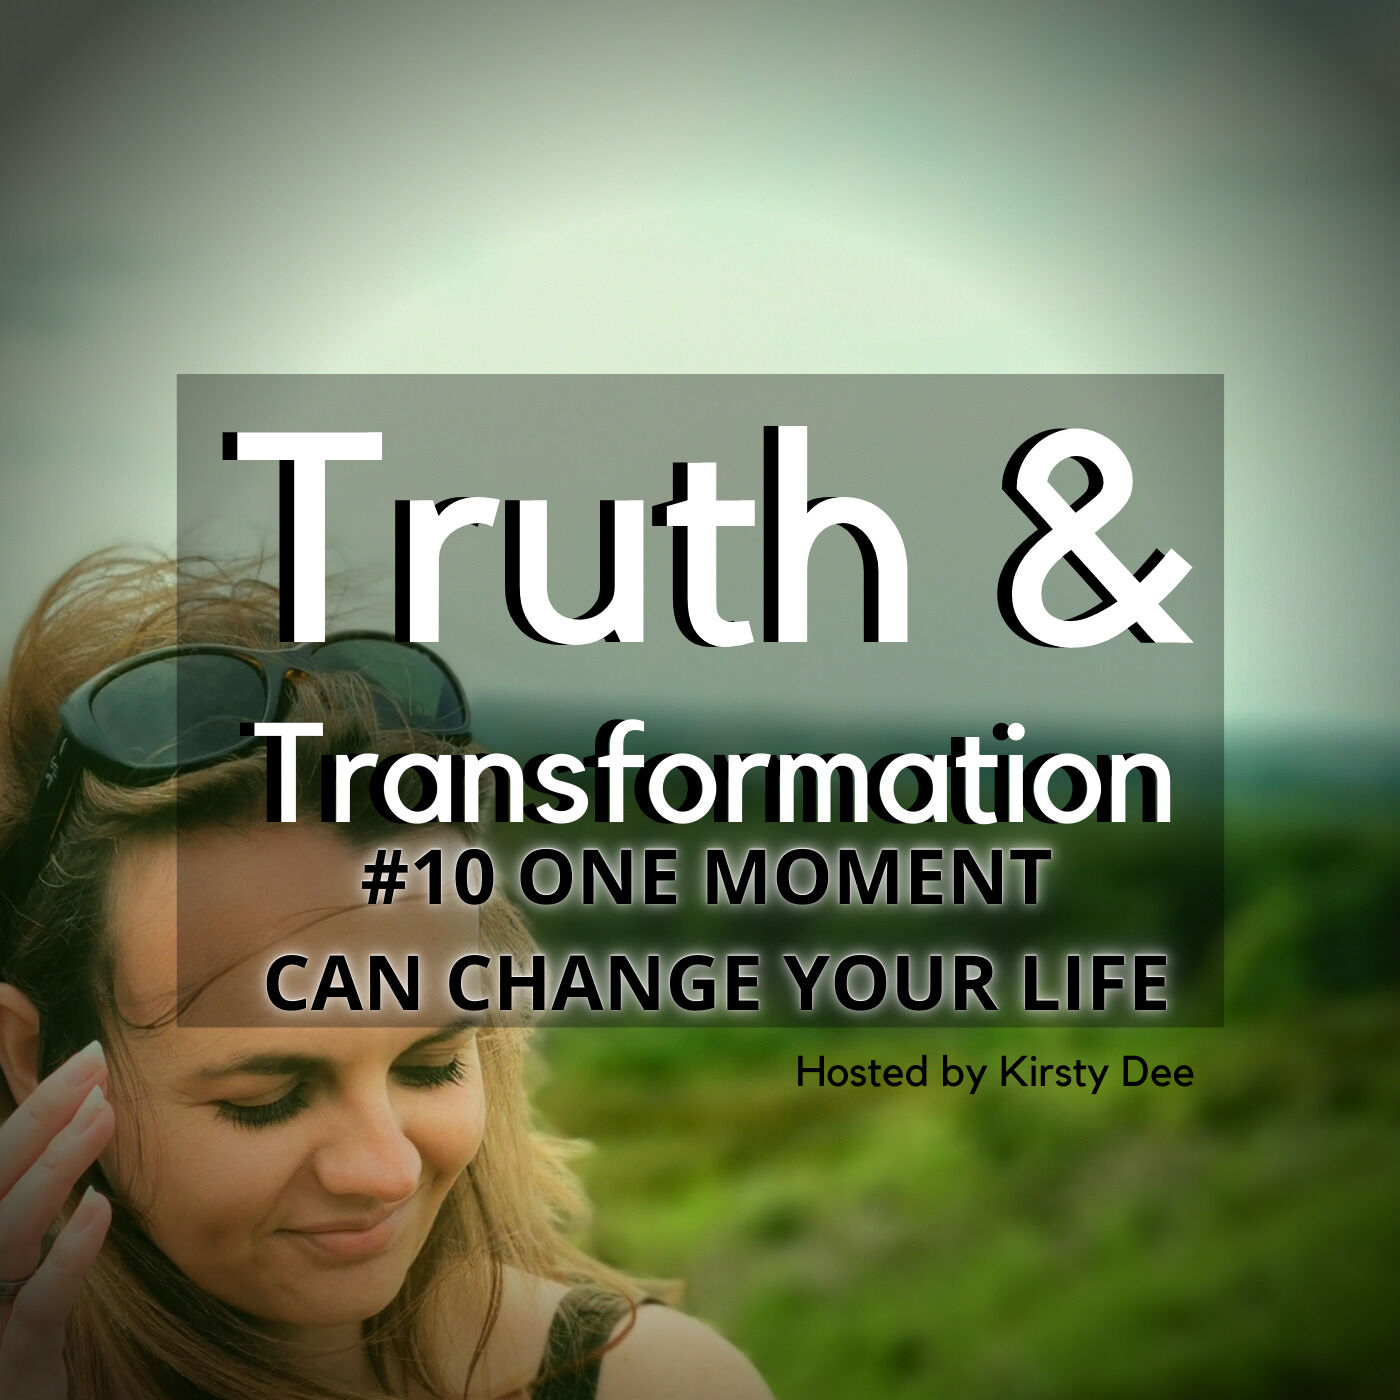 #10 ONE MOMENT CAN CHANGE YOUR LIFE